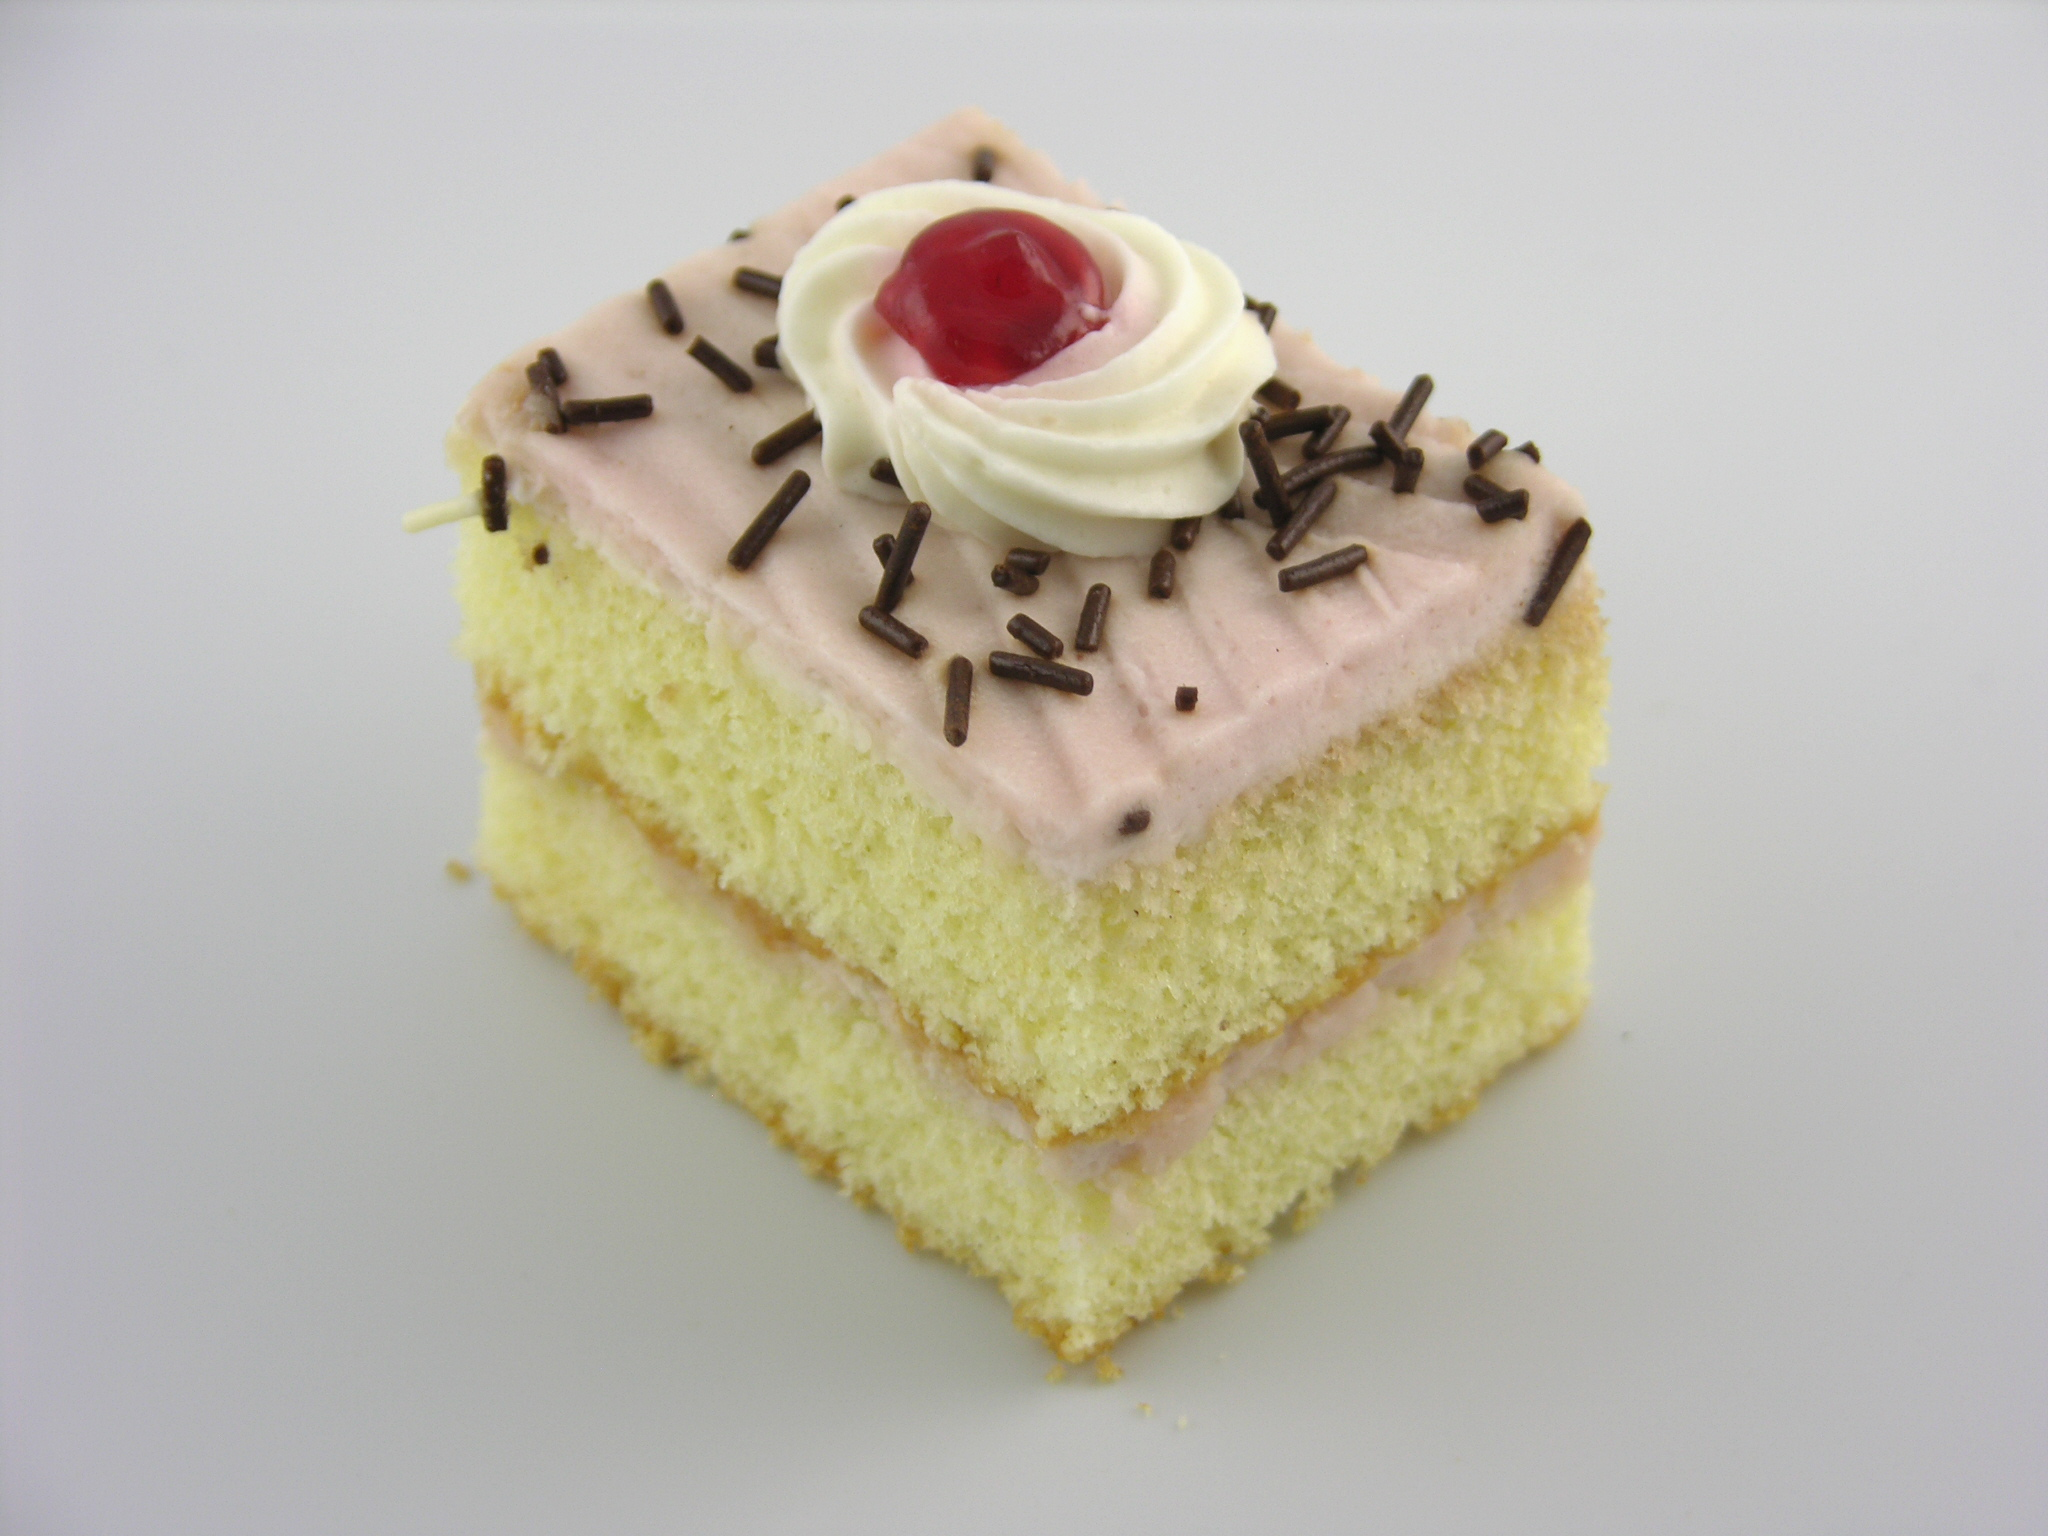 raspberry cake pastry 14 50 moist yellow sponge cake layered and iced ... Cake